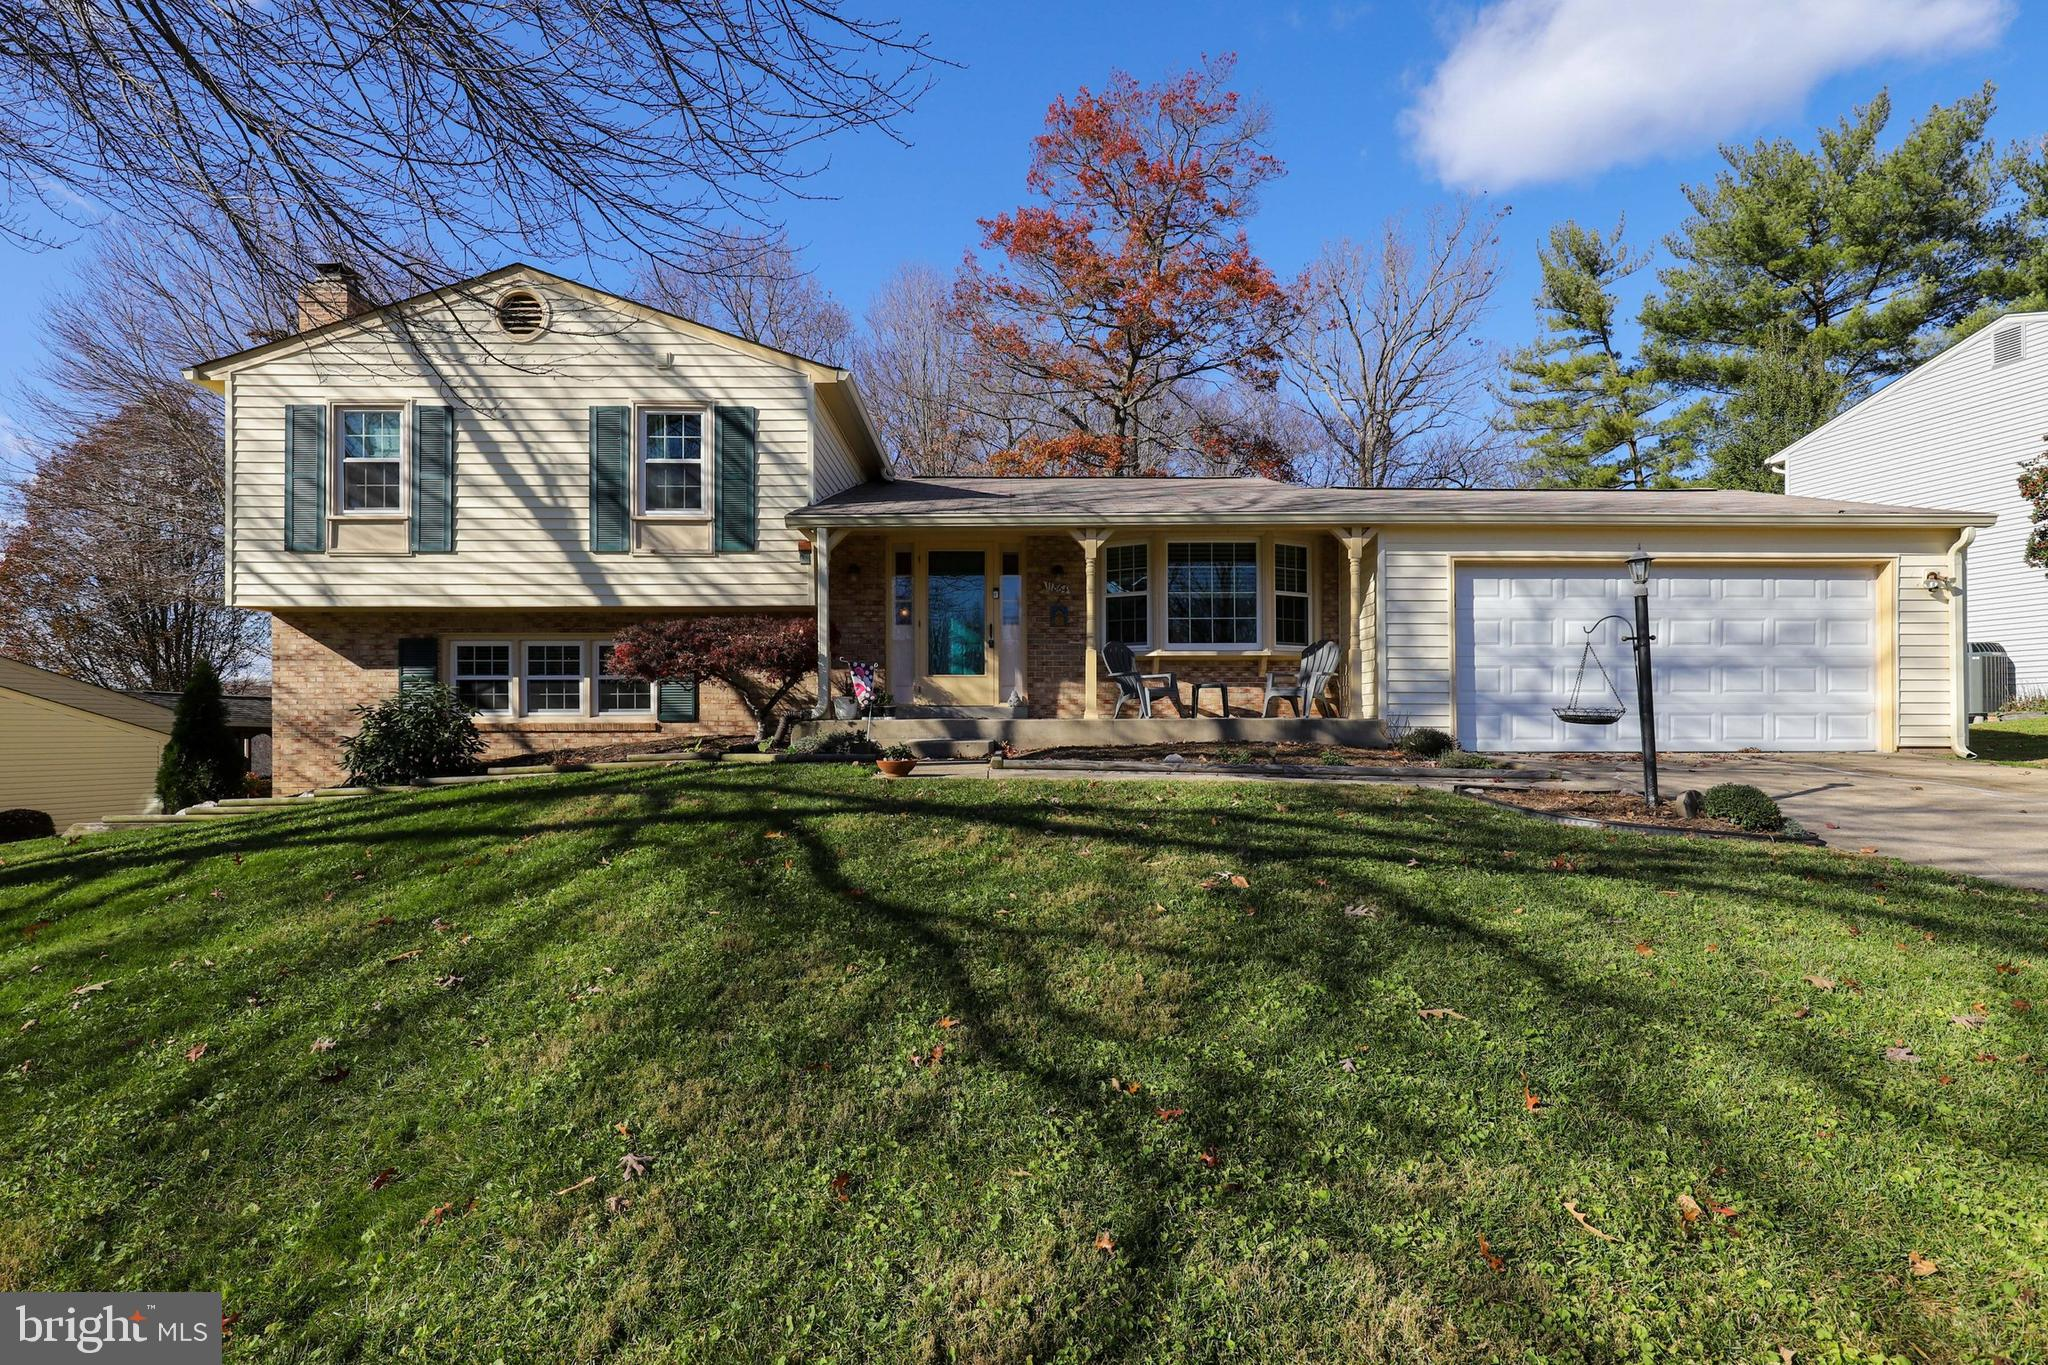 Beautifully maintained home nestled on quiet cul-de-sac welcomes you with impeccable landscaping and